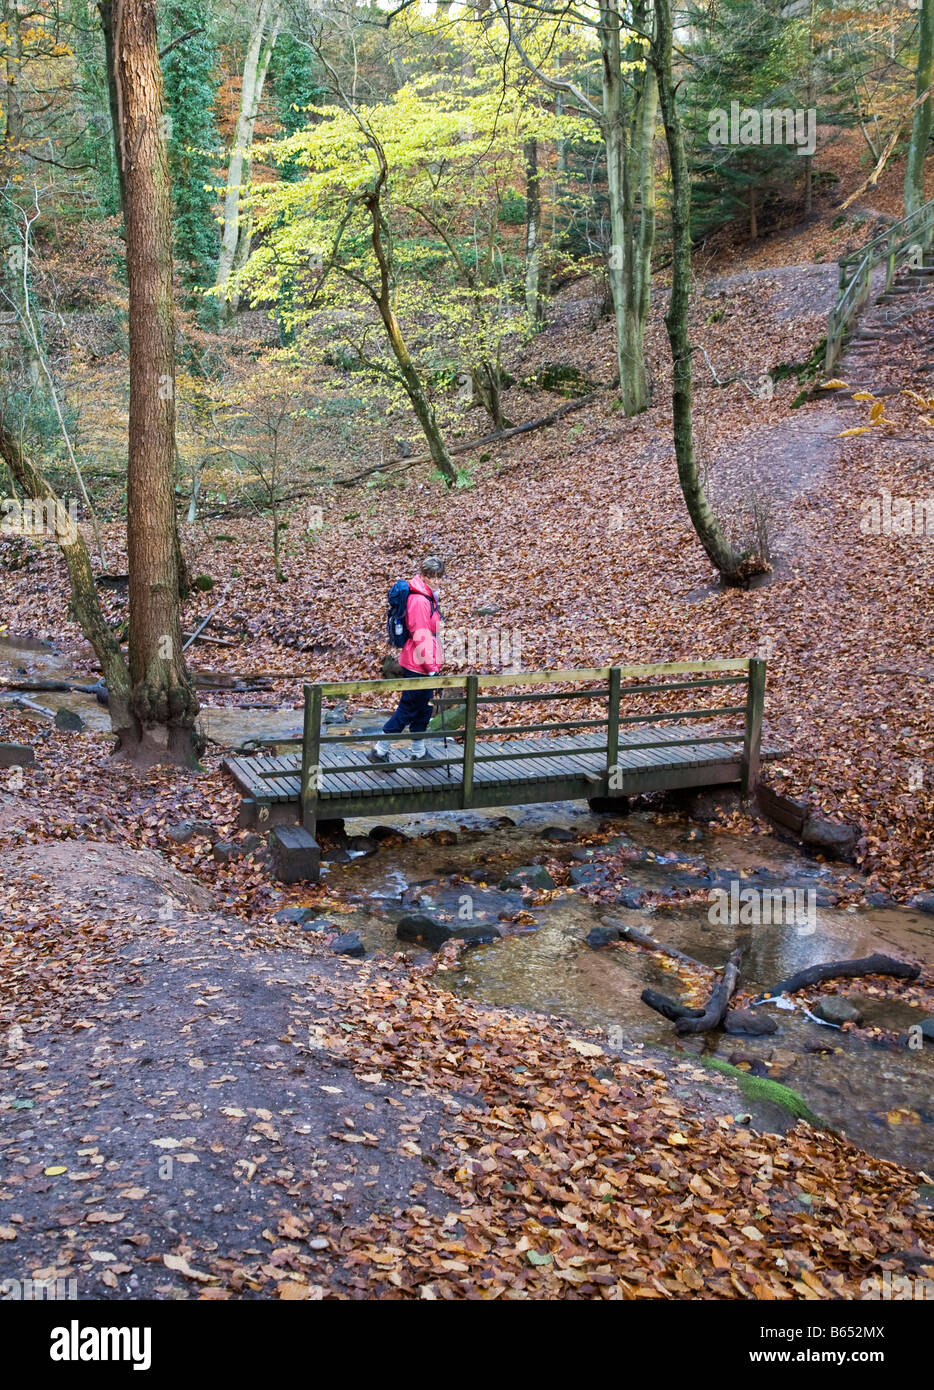 Wooden Footbridge over River Churnet in Dimmings Dale Autumn - Stock Image